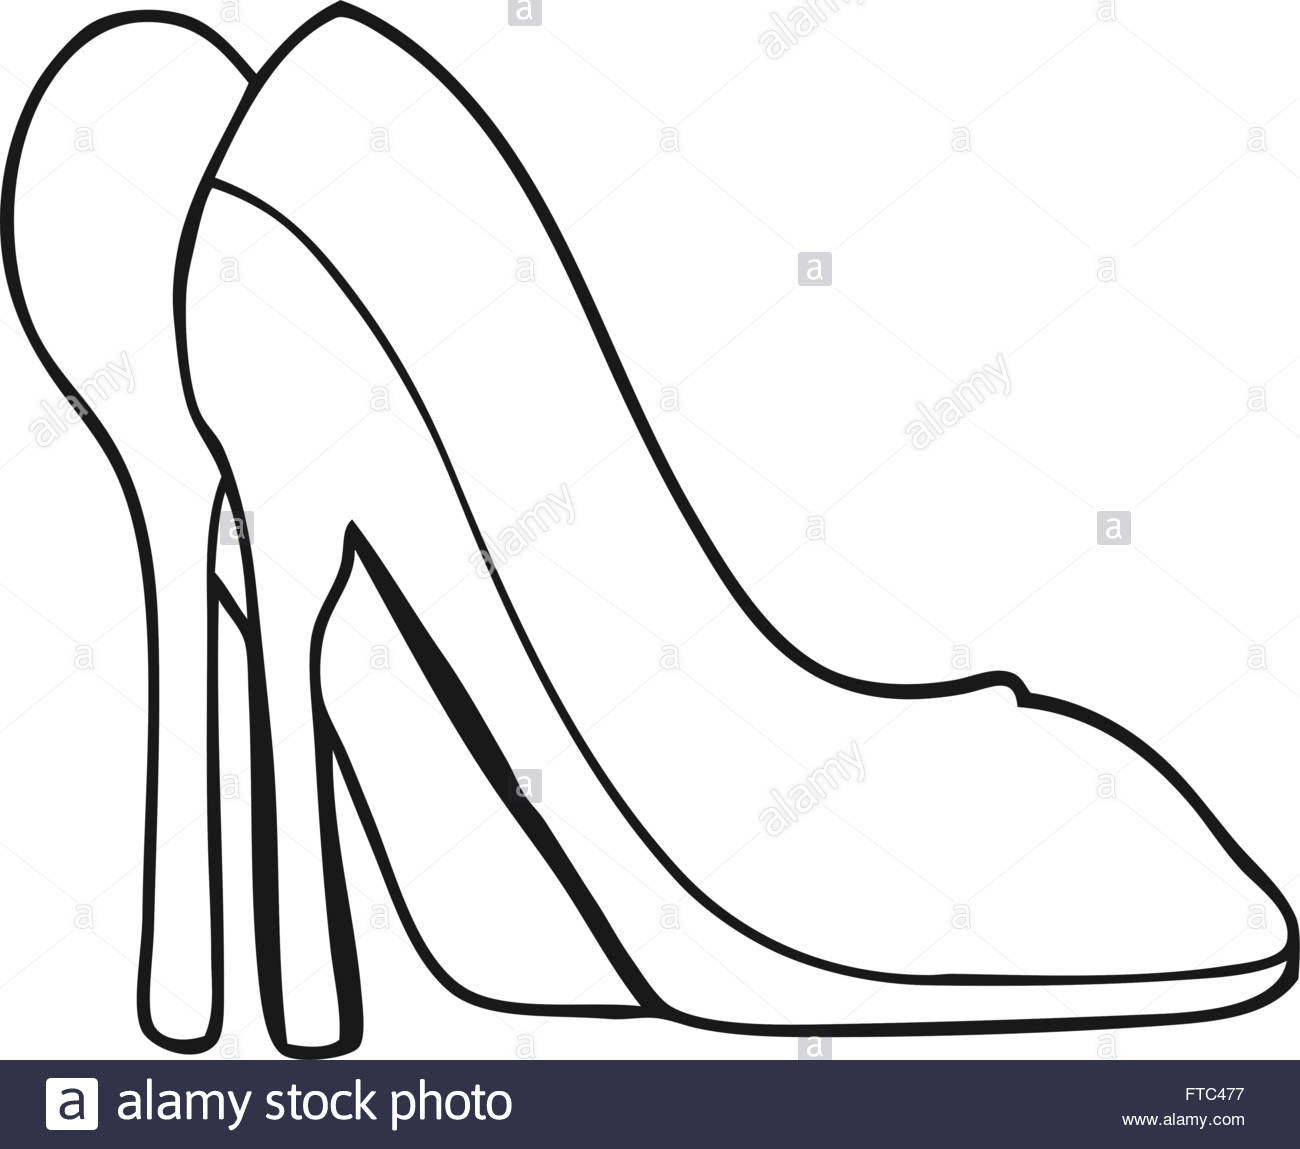 1300x1149 Freehand Drawn Black And White Cartoon High Heel Shoes Stock